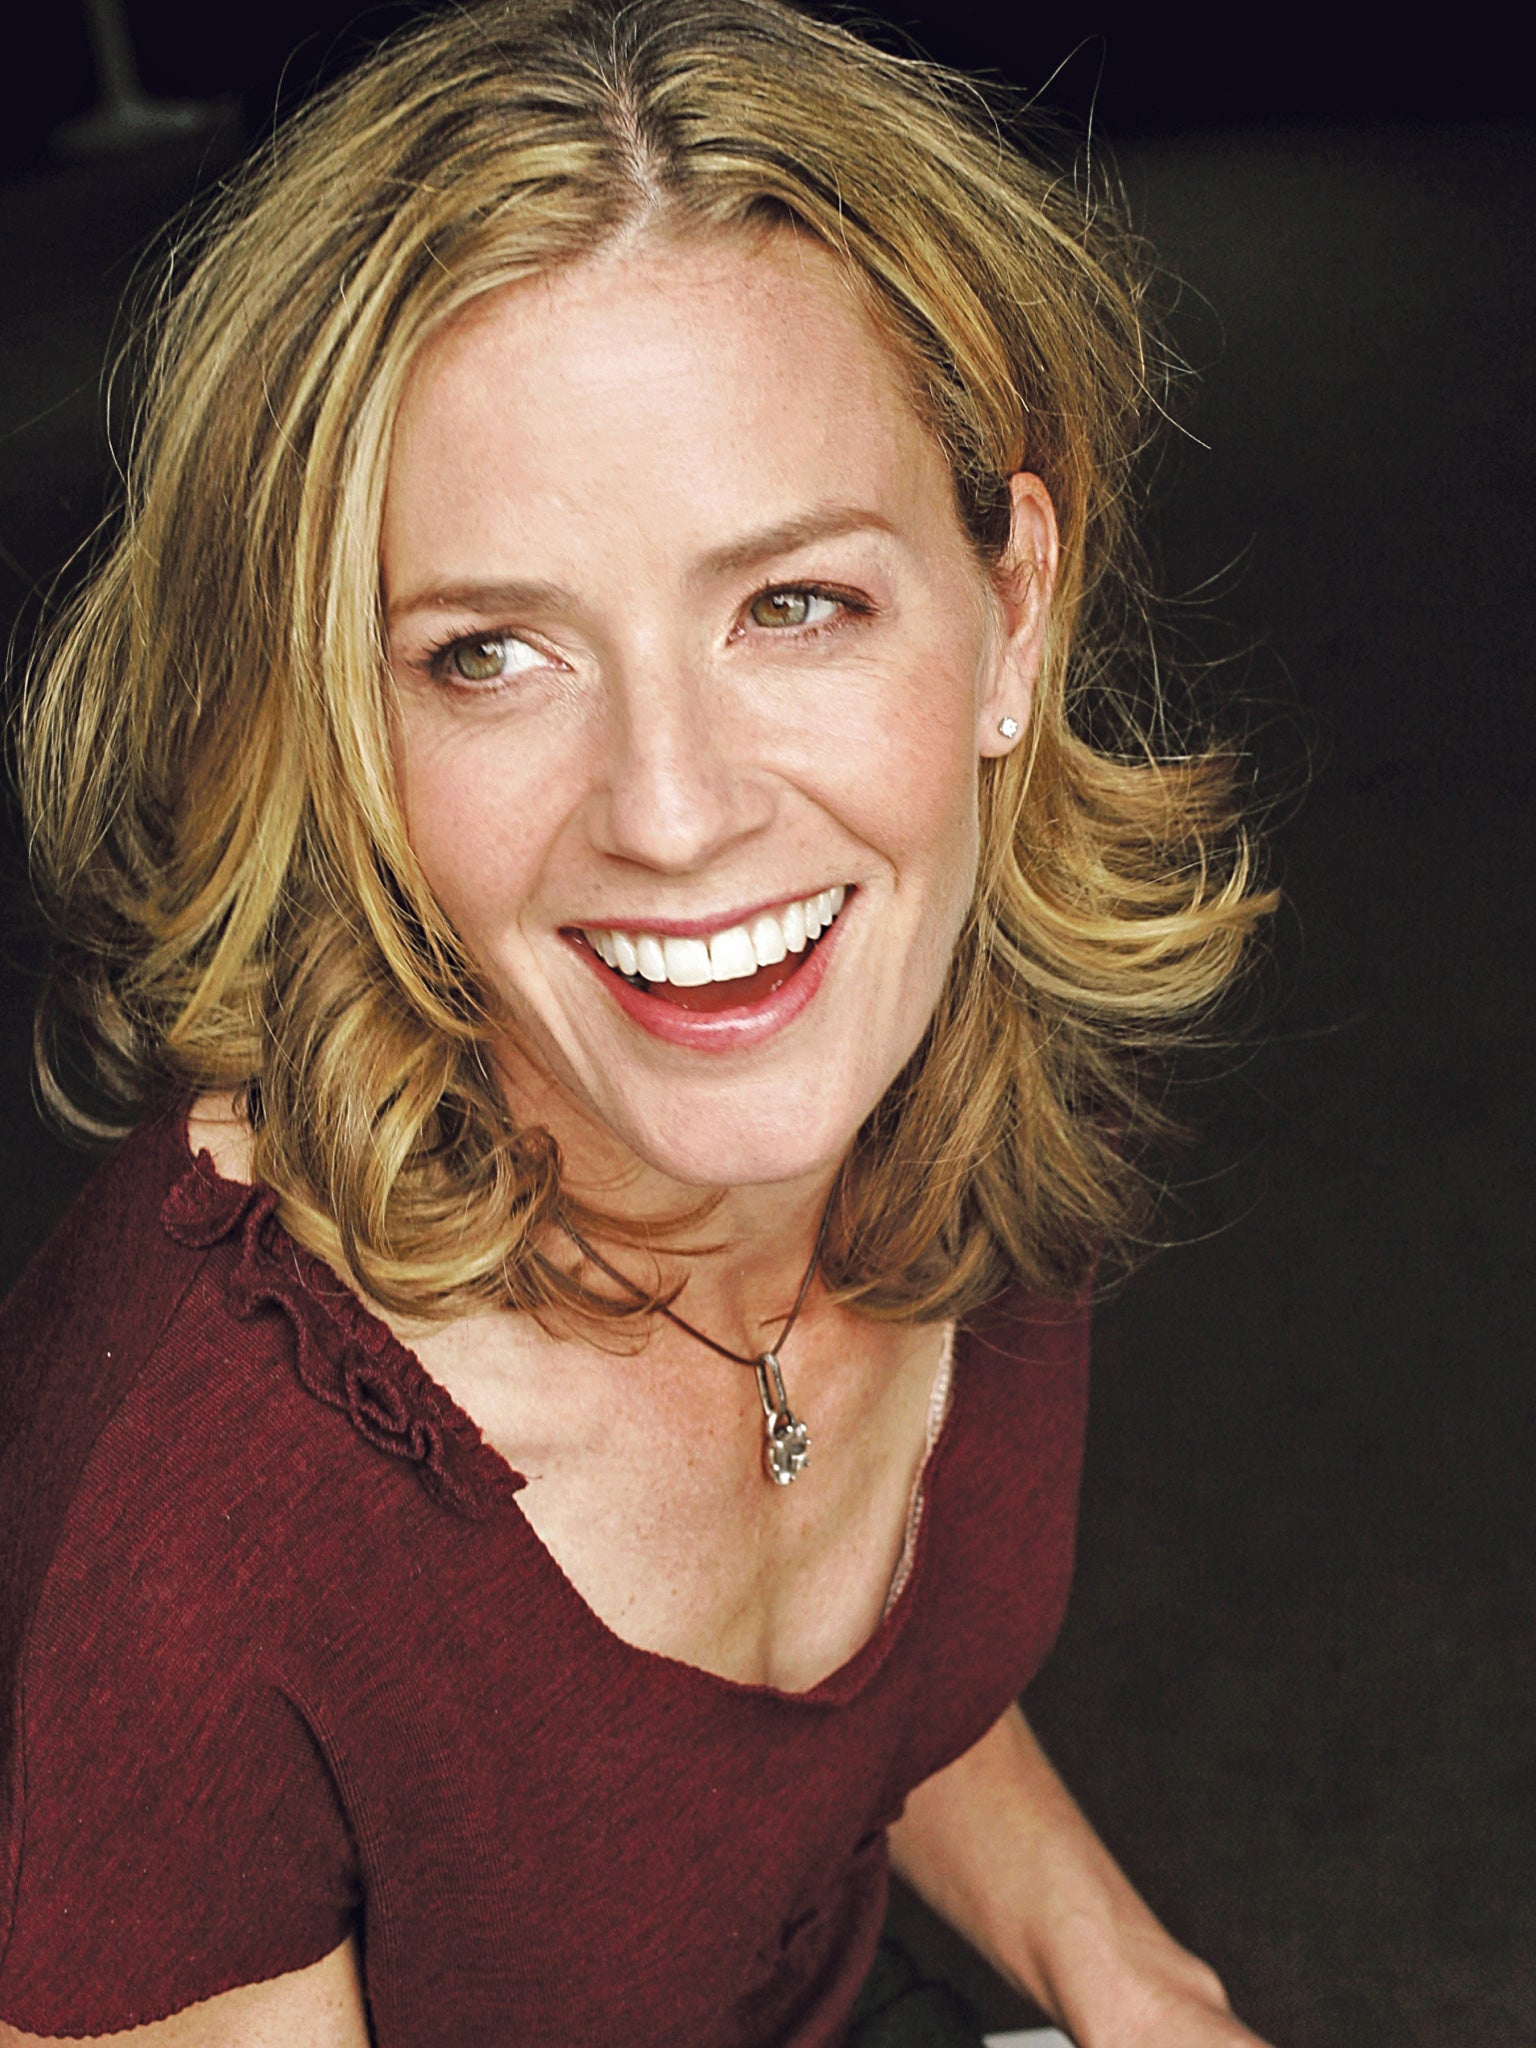 Photo of the cool talented  Elisabeth Shue from  Wilmington, Delaware, United States without makeup